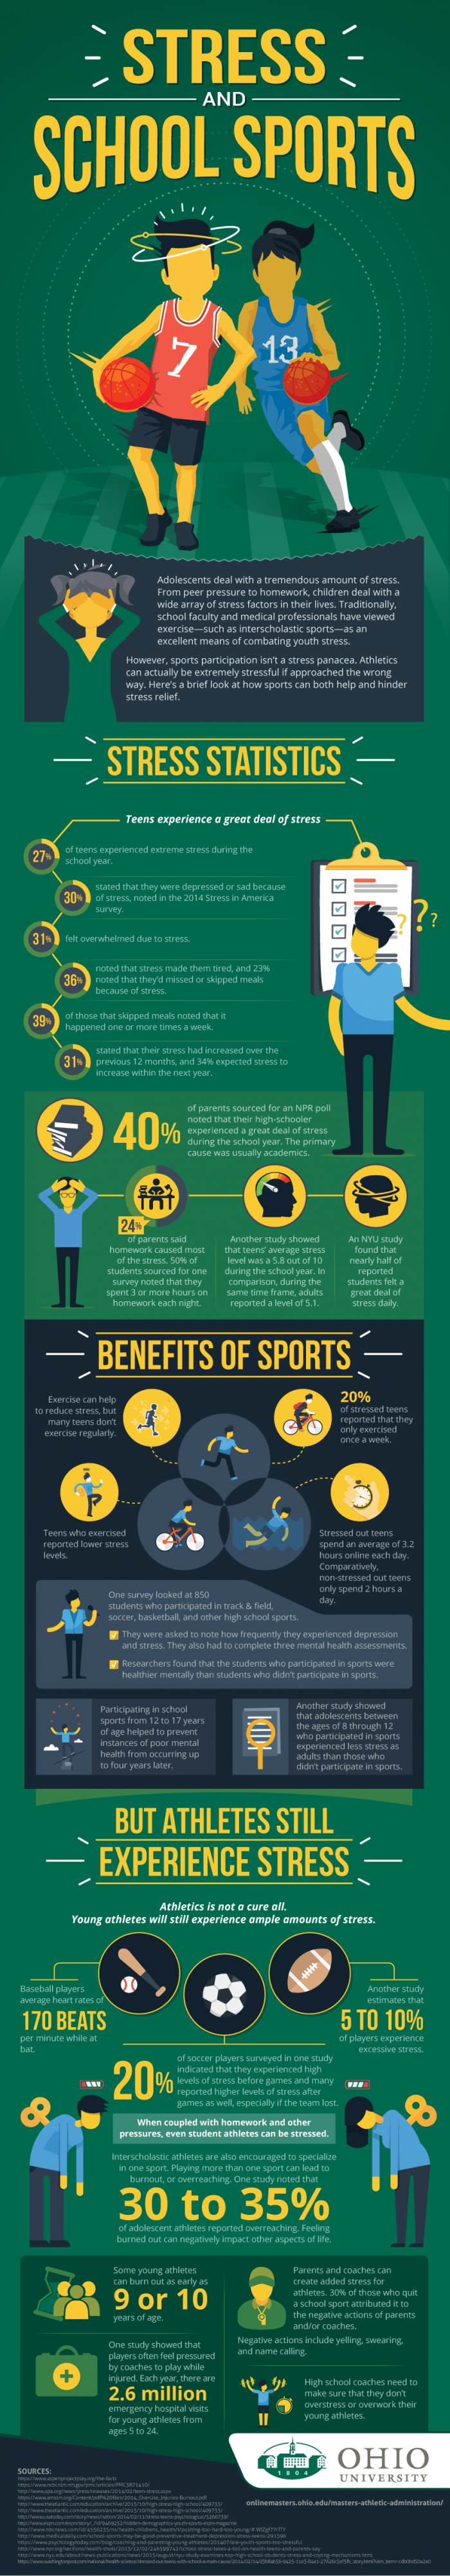 infographic about the benefits of school sports for teenagers